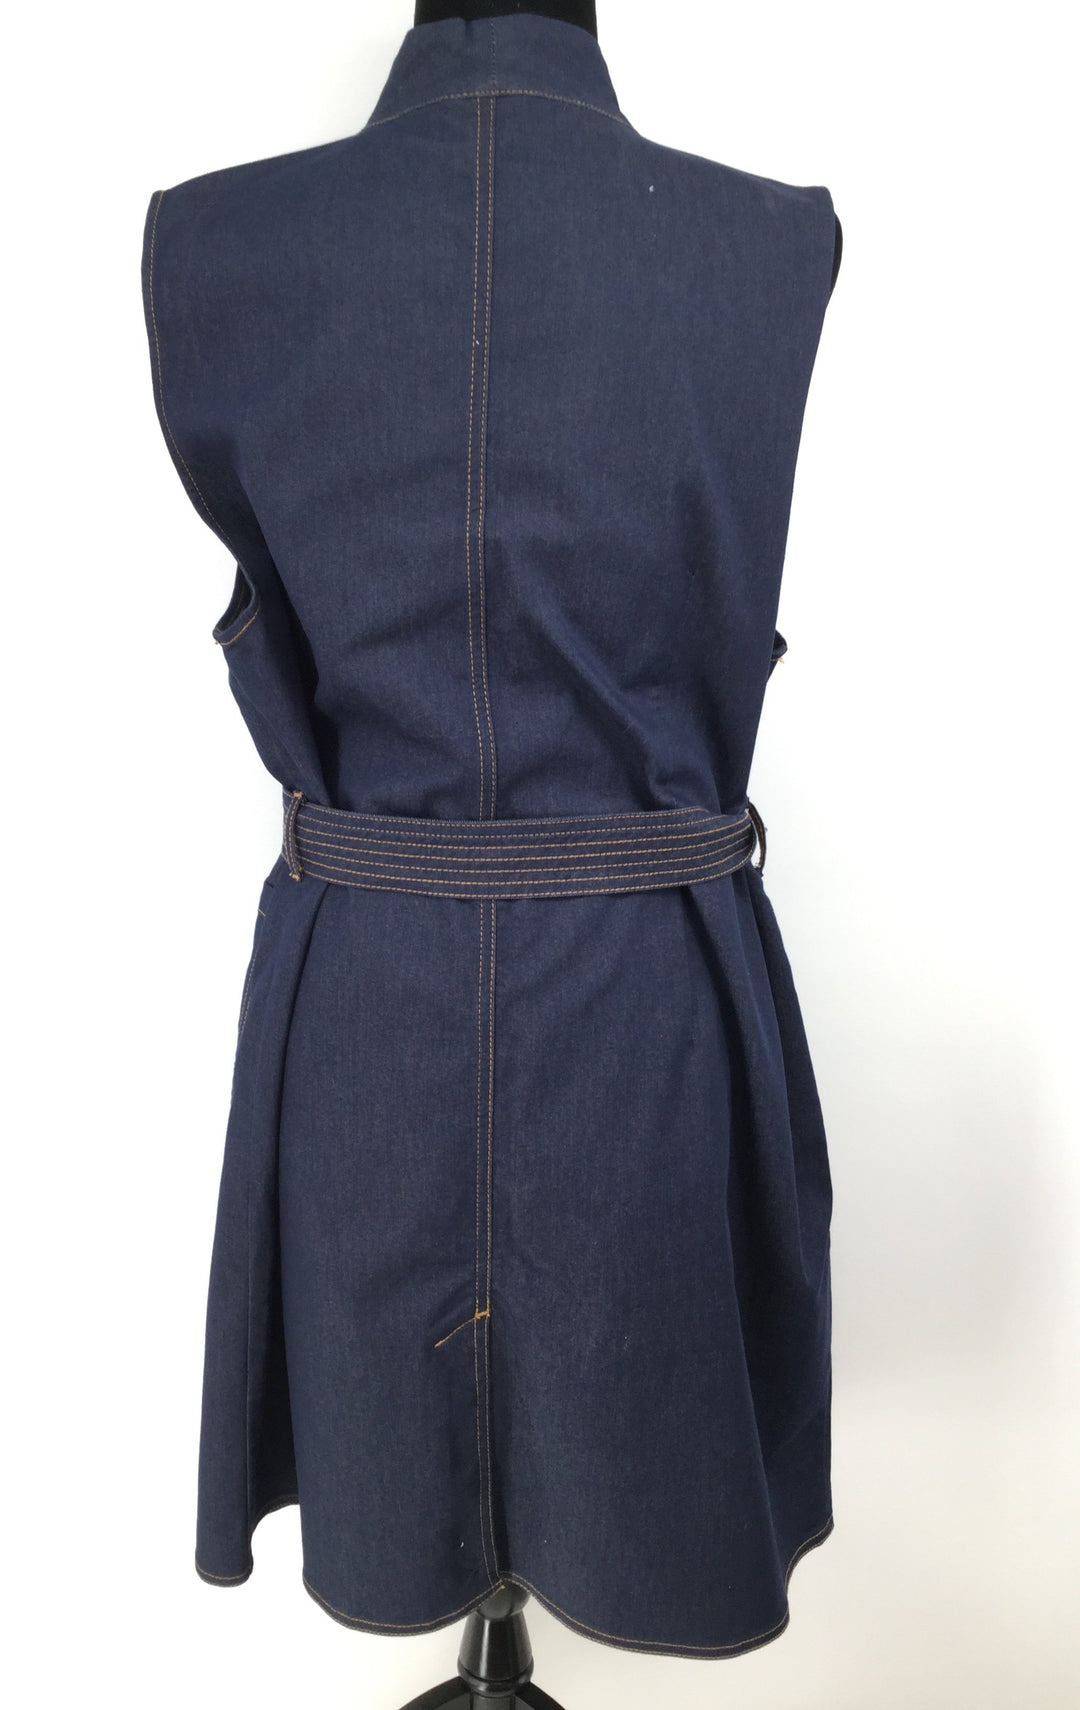 NEW WITH TAGS! Chico's Dress Size:3 - <P>NEW! CHICO'S DENIM BUTTON FRONT DRESS SIZE 3. HIDDEN BUTTONS AND DENIM TIE BELT. TWO POCKETS.</P>